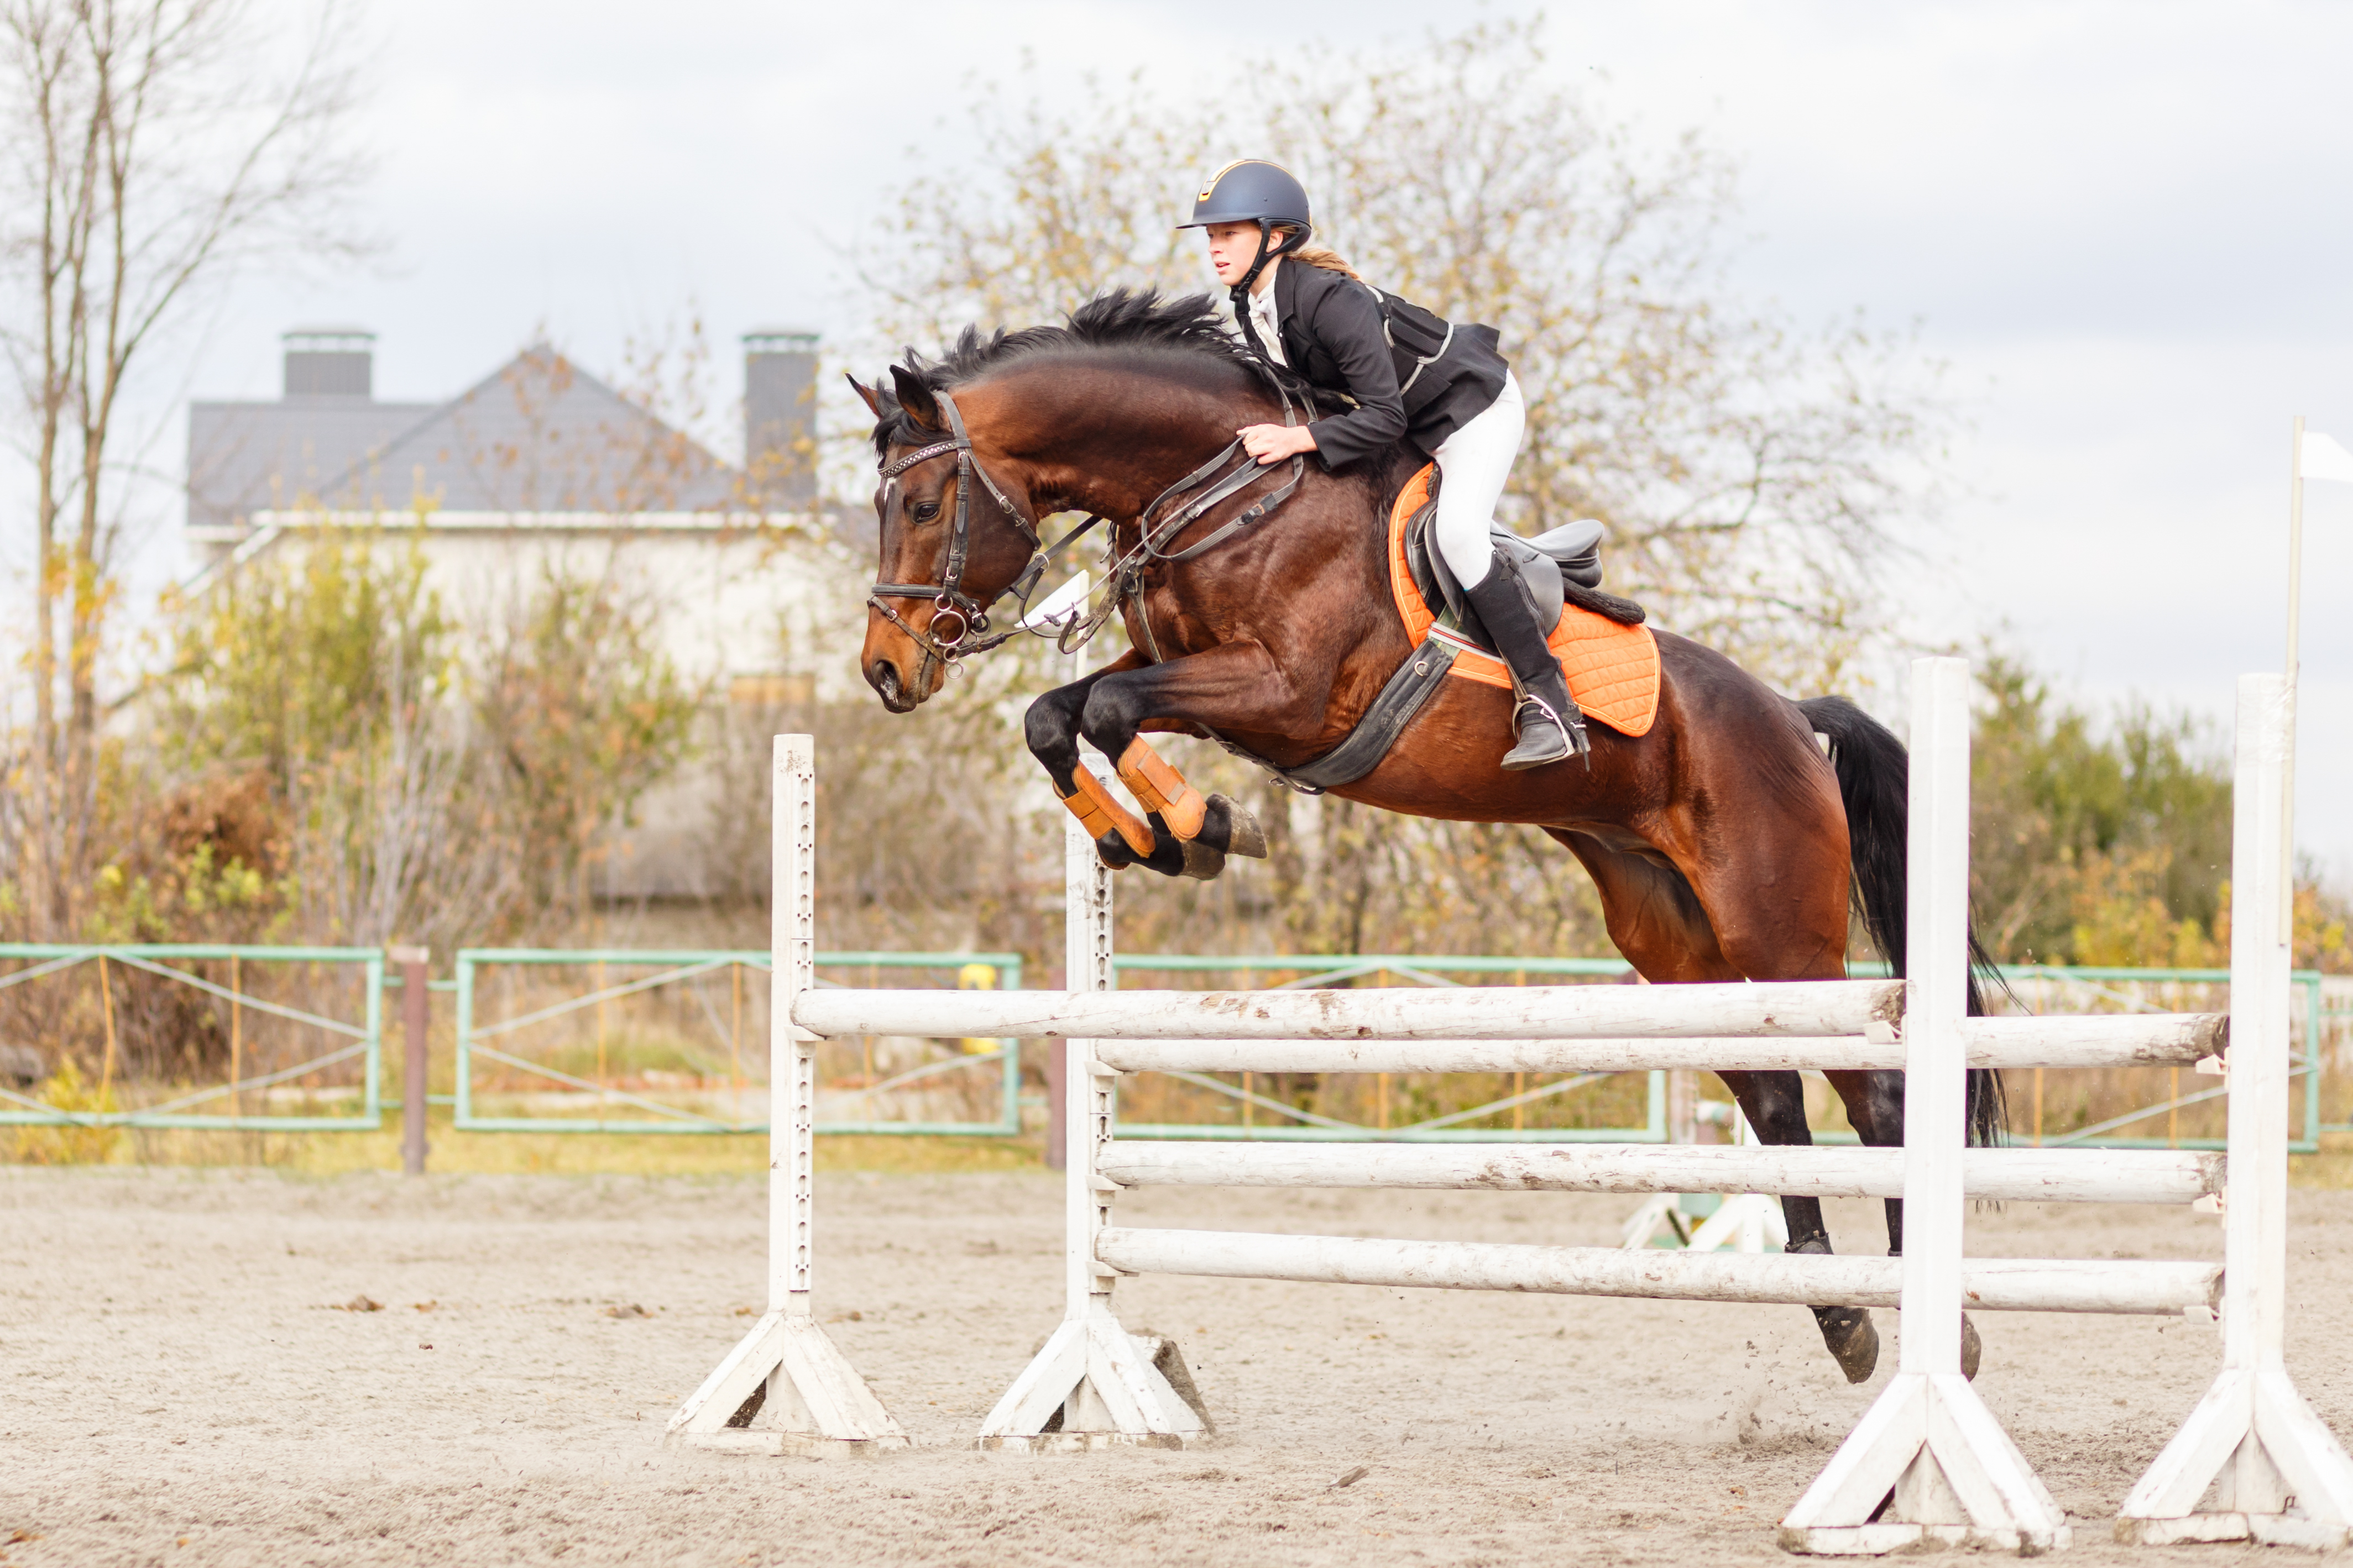 Salt vs. Electrolytes for Horses: What's the Difference?